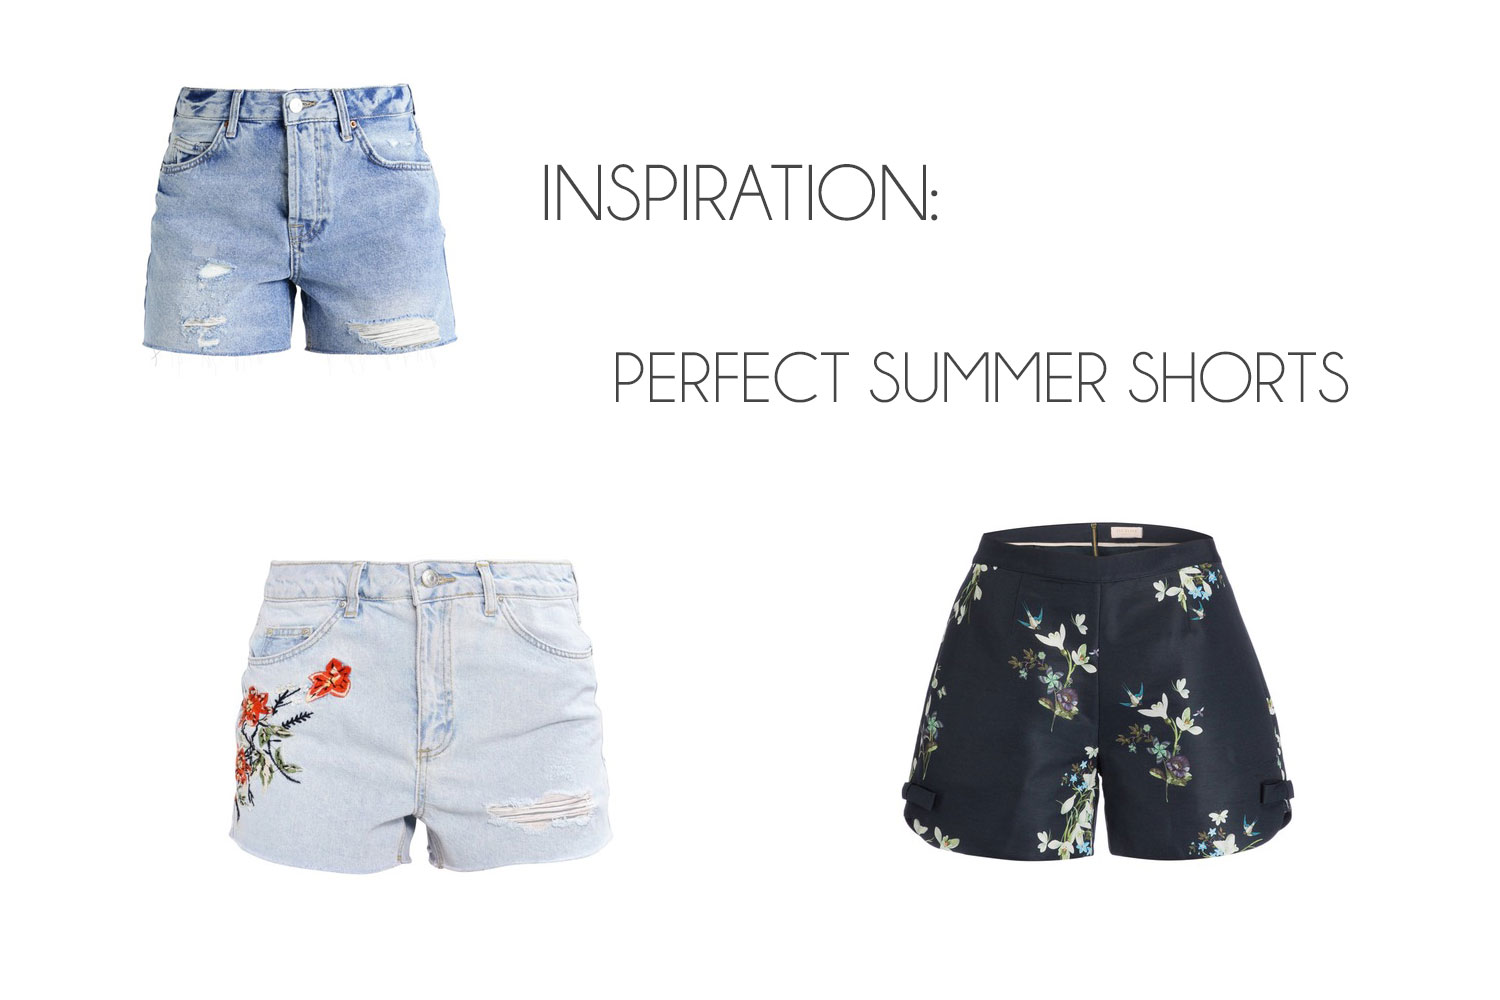 5 Things that Rocked my World in July - Perfect Summer Shorts